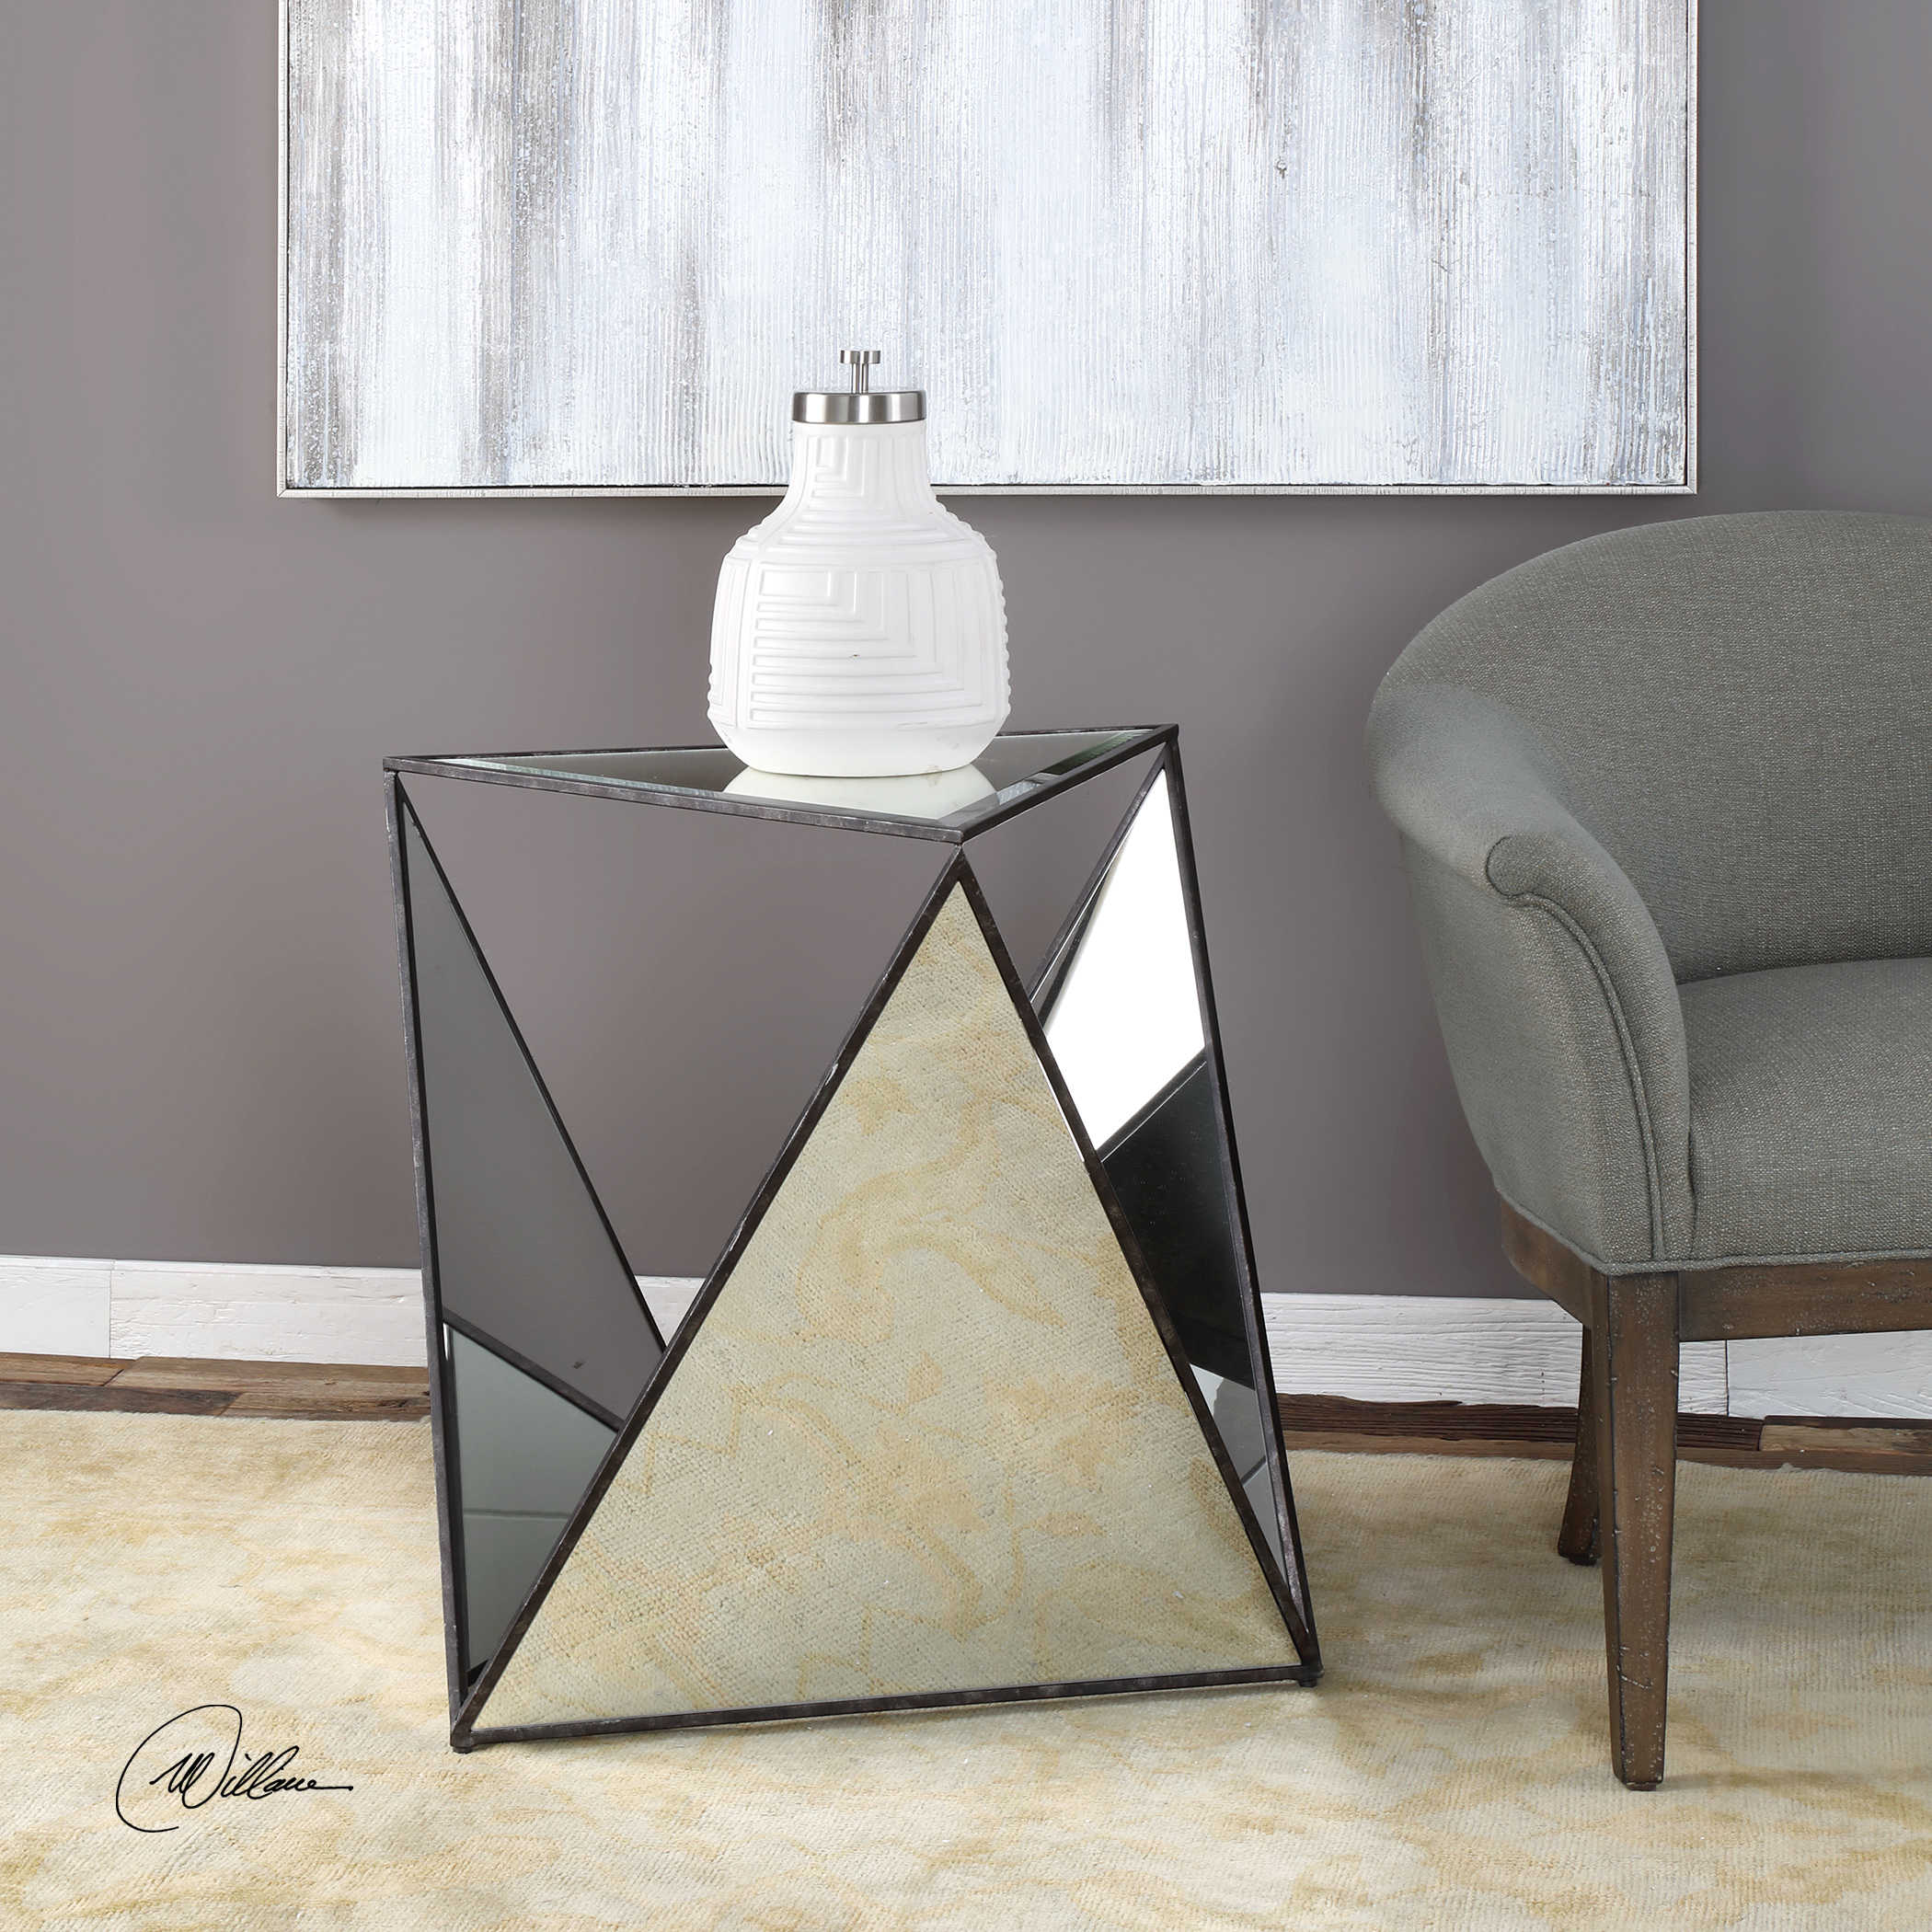 Mirrored Tripod Accent Table